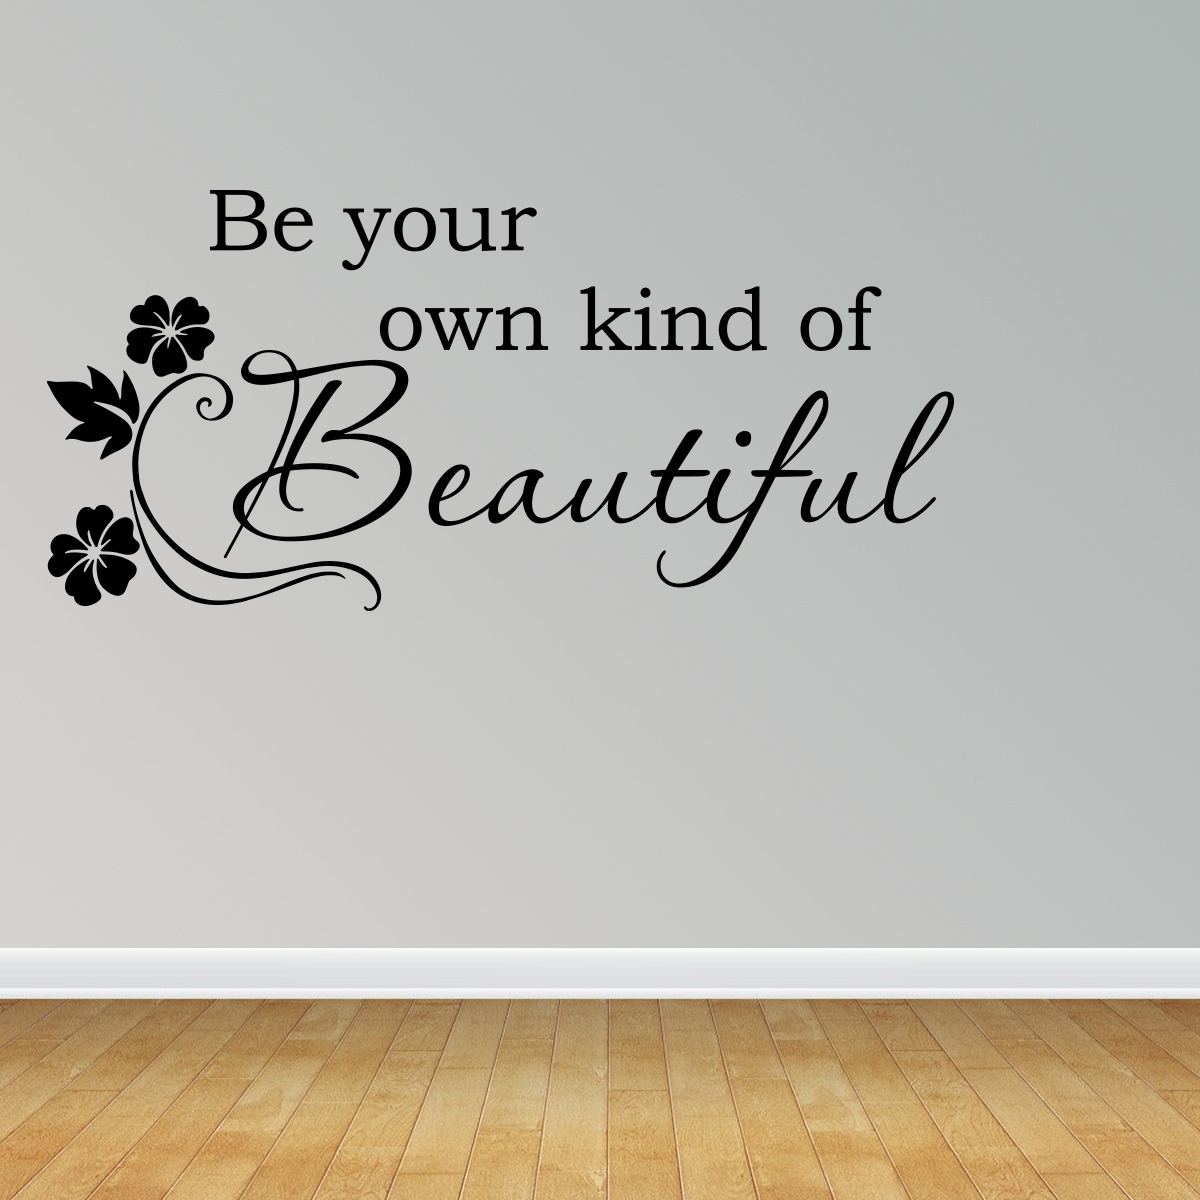 Wall Decal Quote Be Your Own Kind Of Beautiful Peel & Stick Marilyn Monroe R13